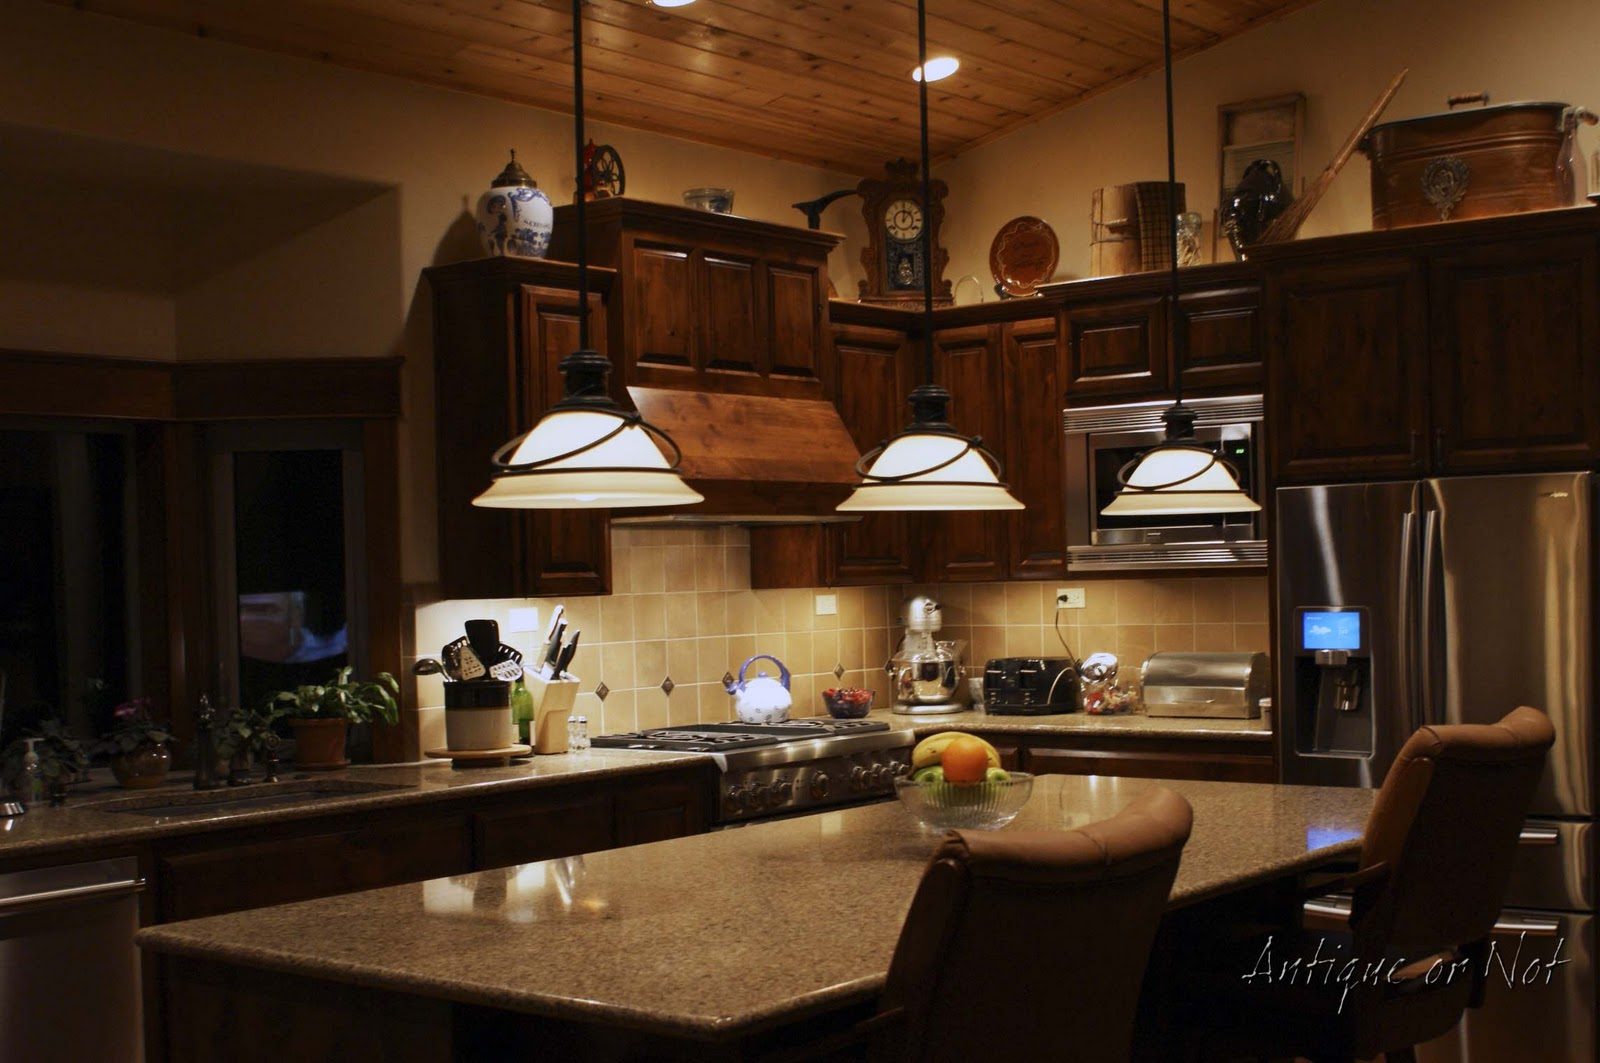 interior decorating top kitchen cabinets modern. Interior Decorating Top Kitchen Cabinets Modern